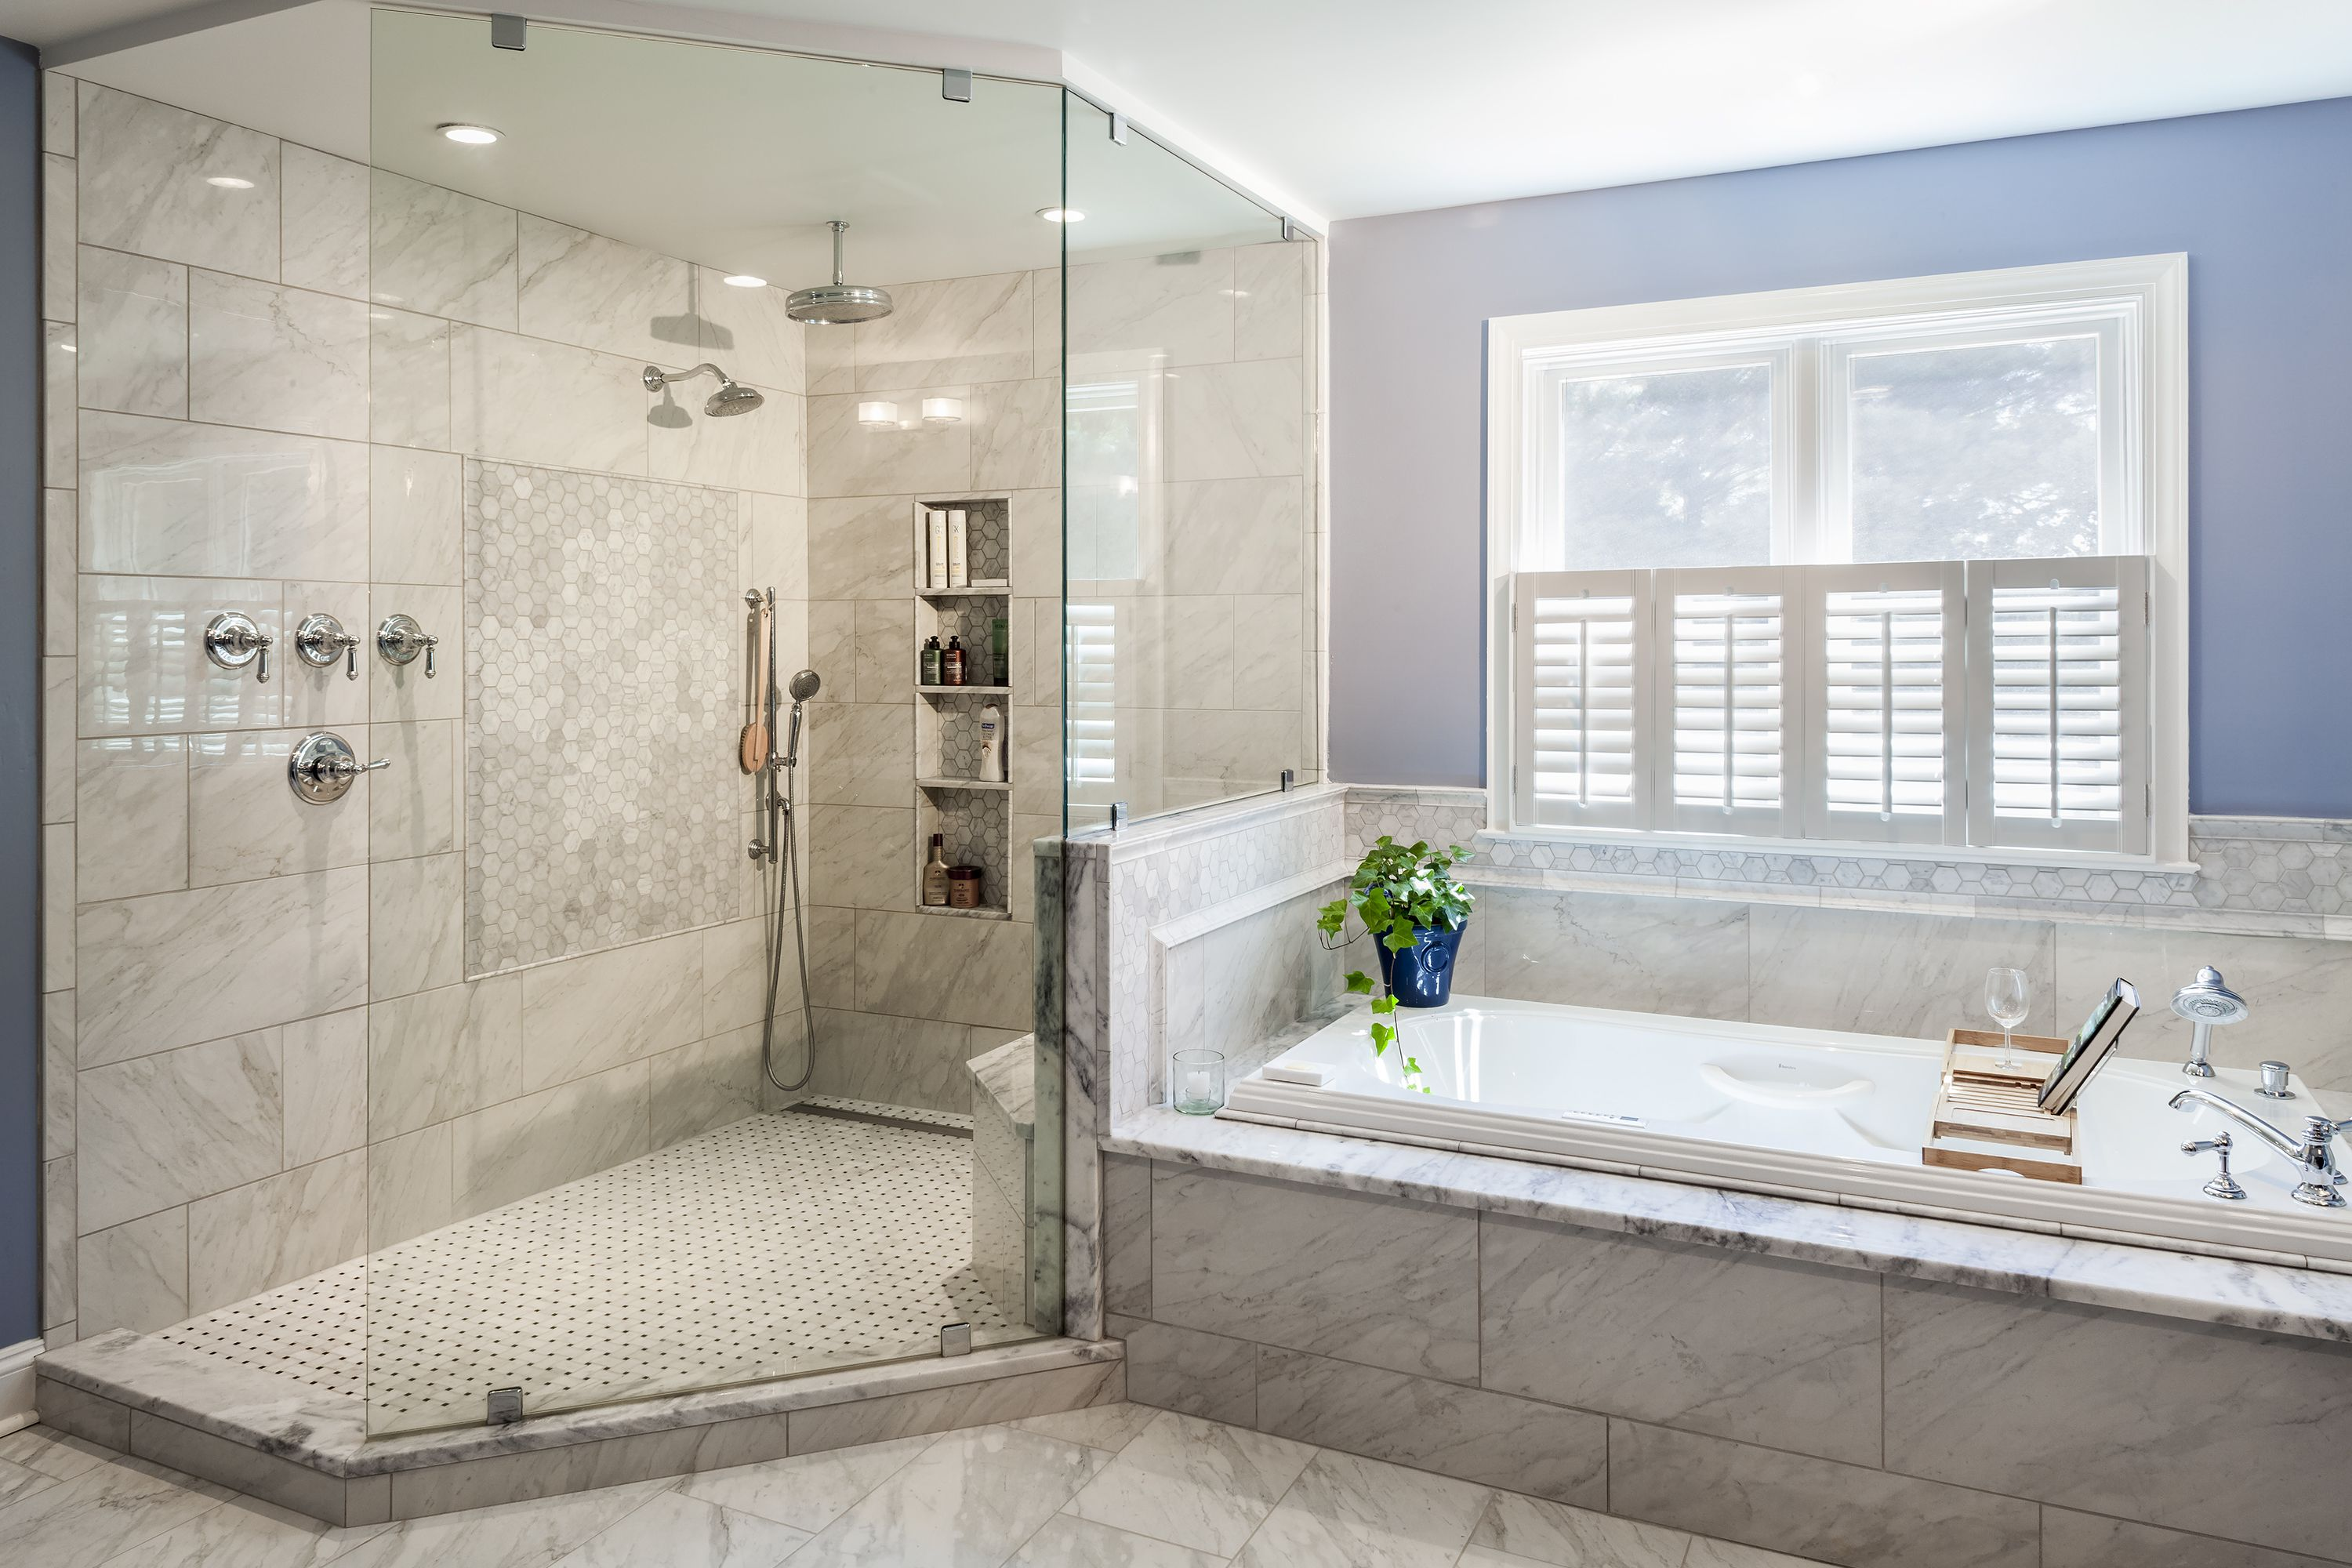 How Much Does It Cost To Redo A Bathroom Uk